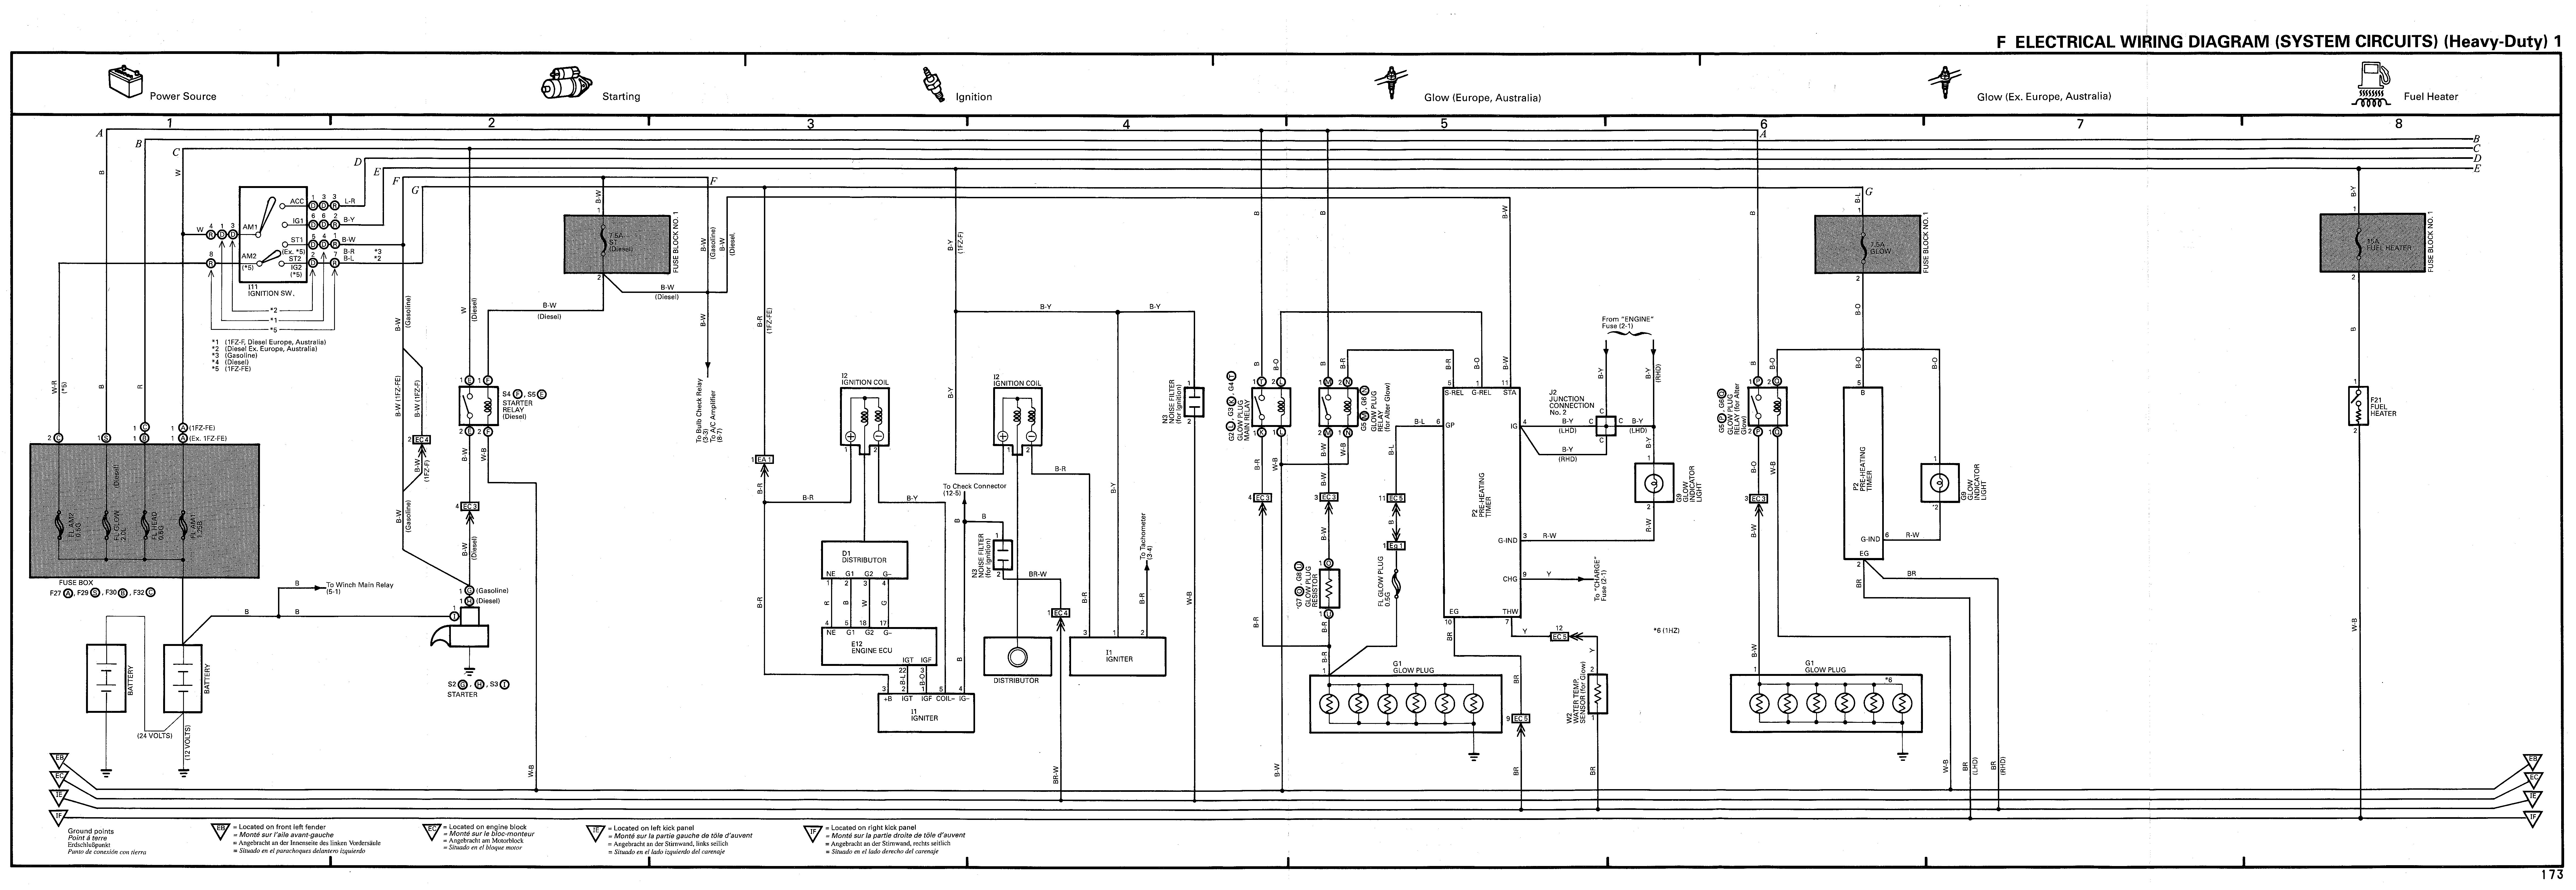 1990 Toyota Wiring Diagram Daily Update 1988 Camry Radio Land Cruiser 1998 Electrical 4runner